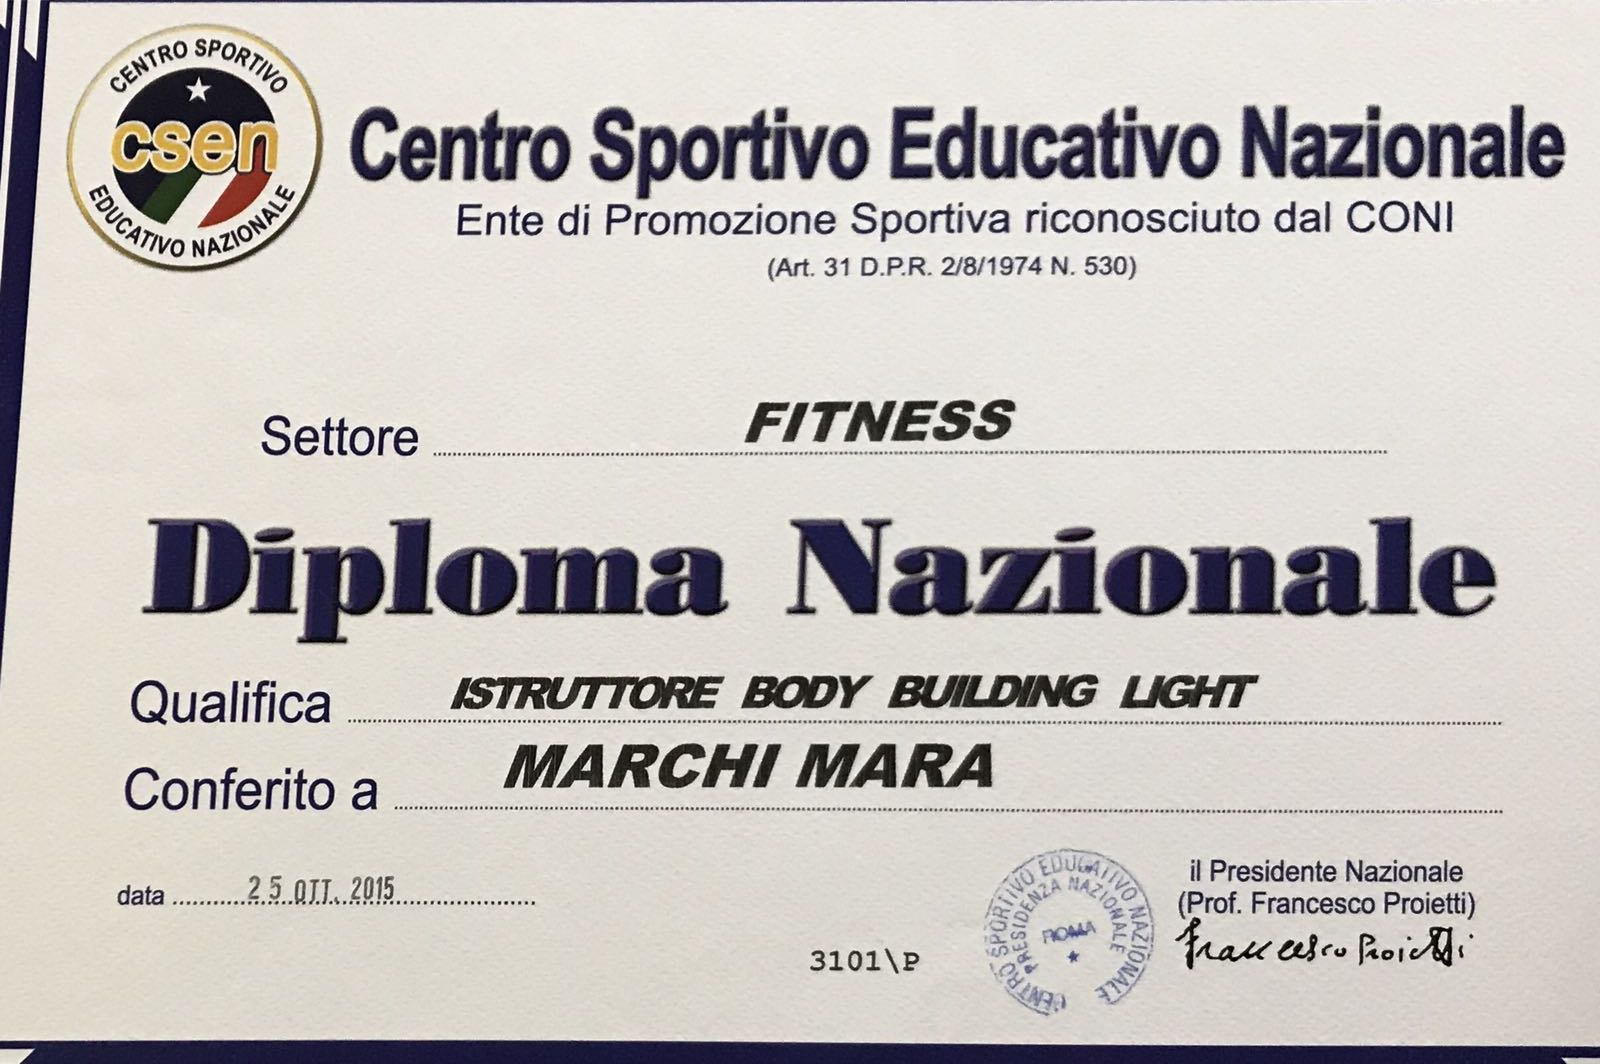 Istruttore body building light